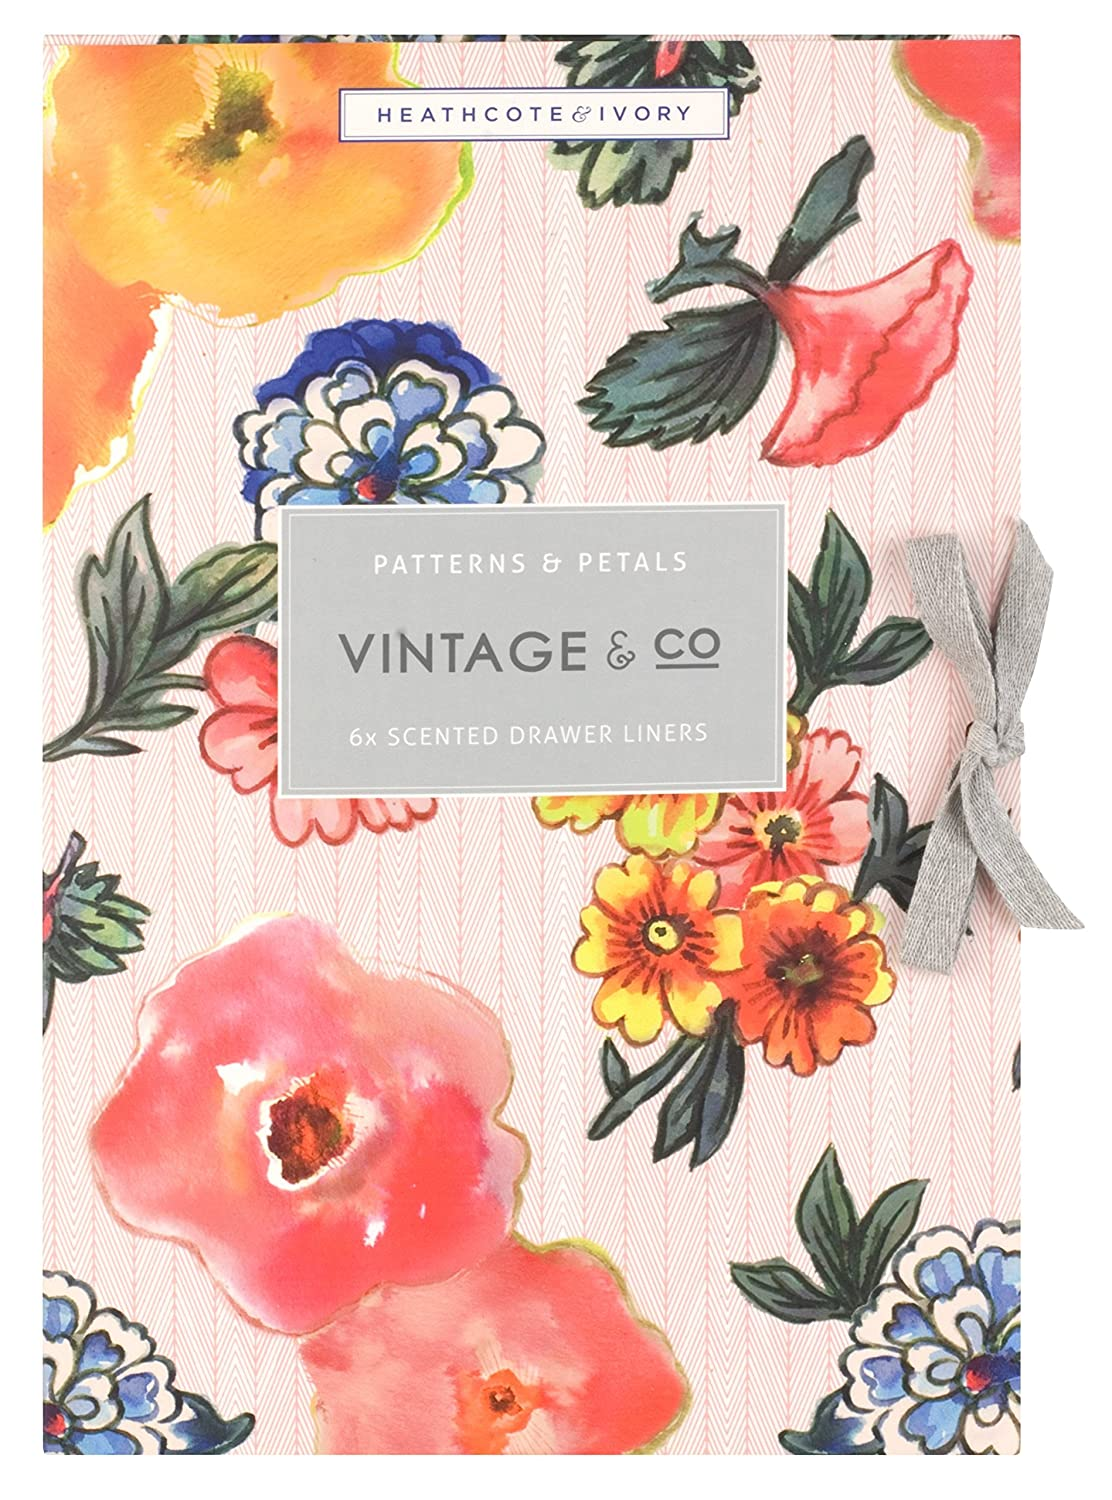 Vintage & Co Patterns & Petals Scented Drawer liners by Vintage & Co FG3002